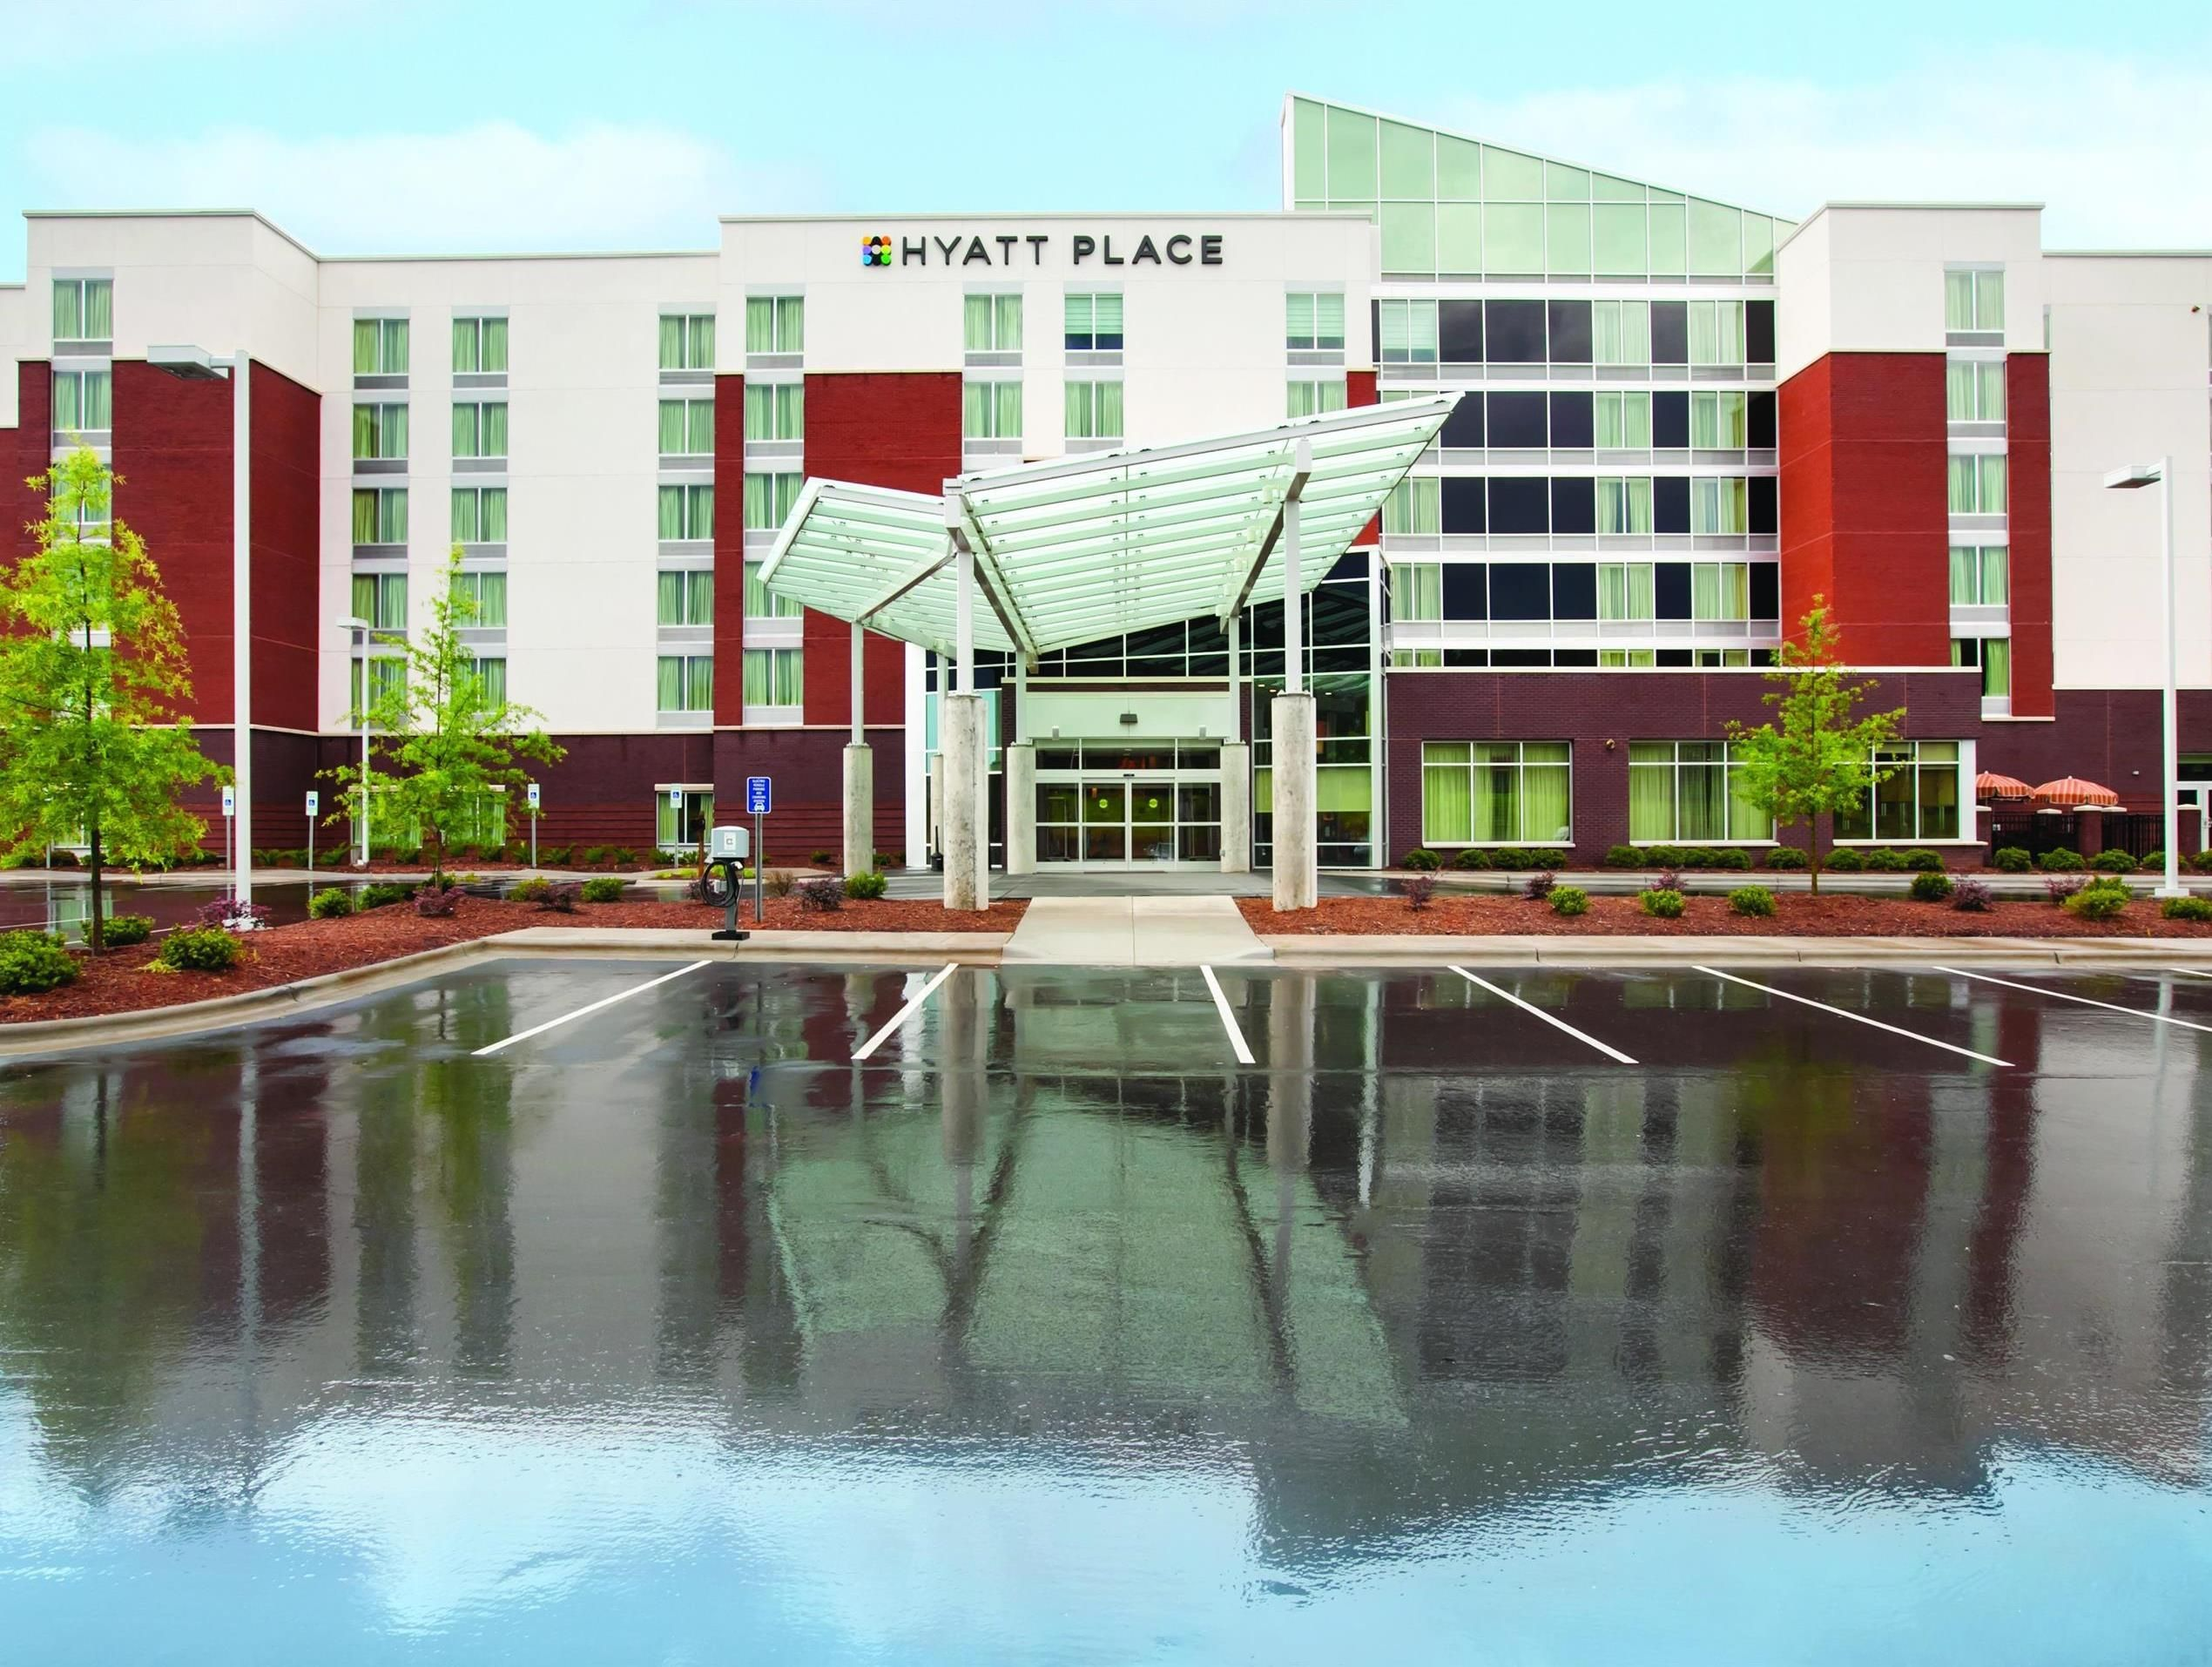 Hyatt Place Raleigh West North Carolina This Hotel Is Located Off Interstate 40 Exit 290 Just Km From State